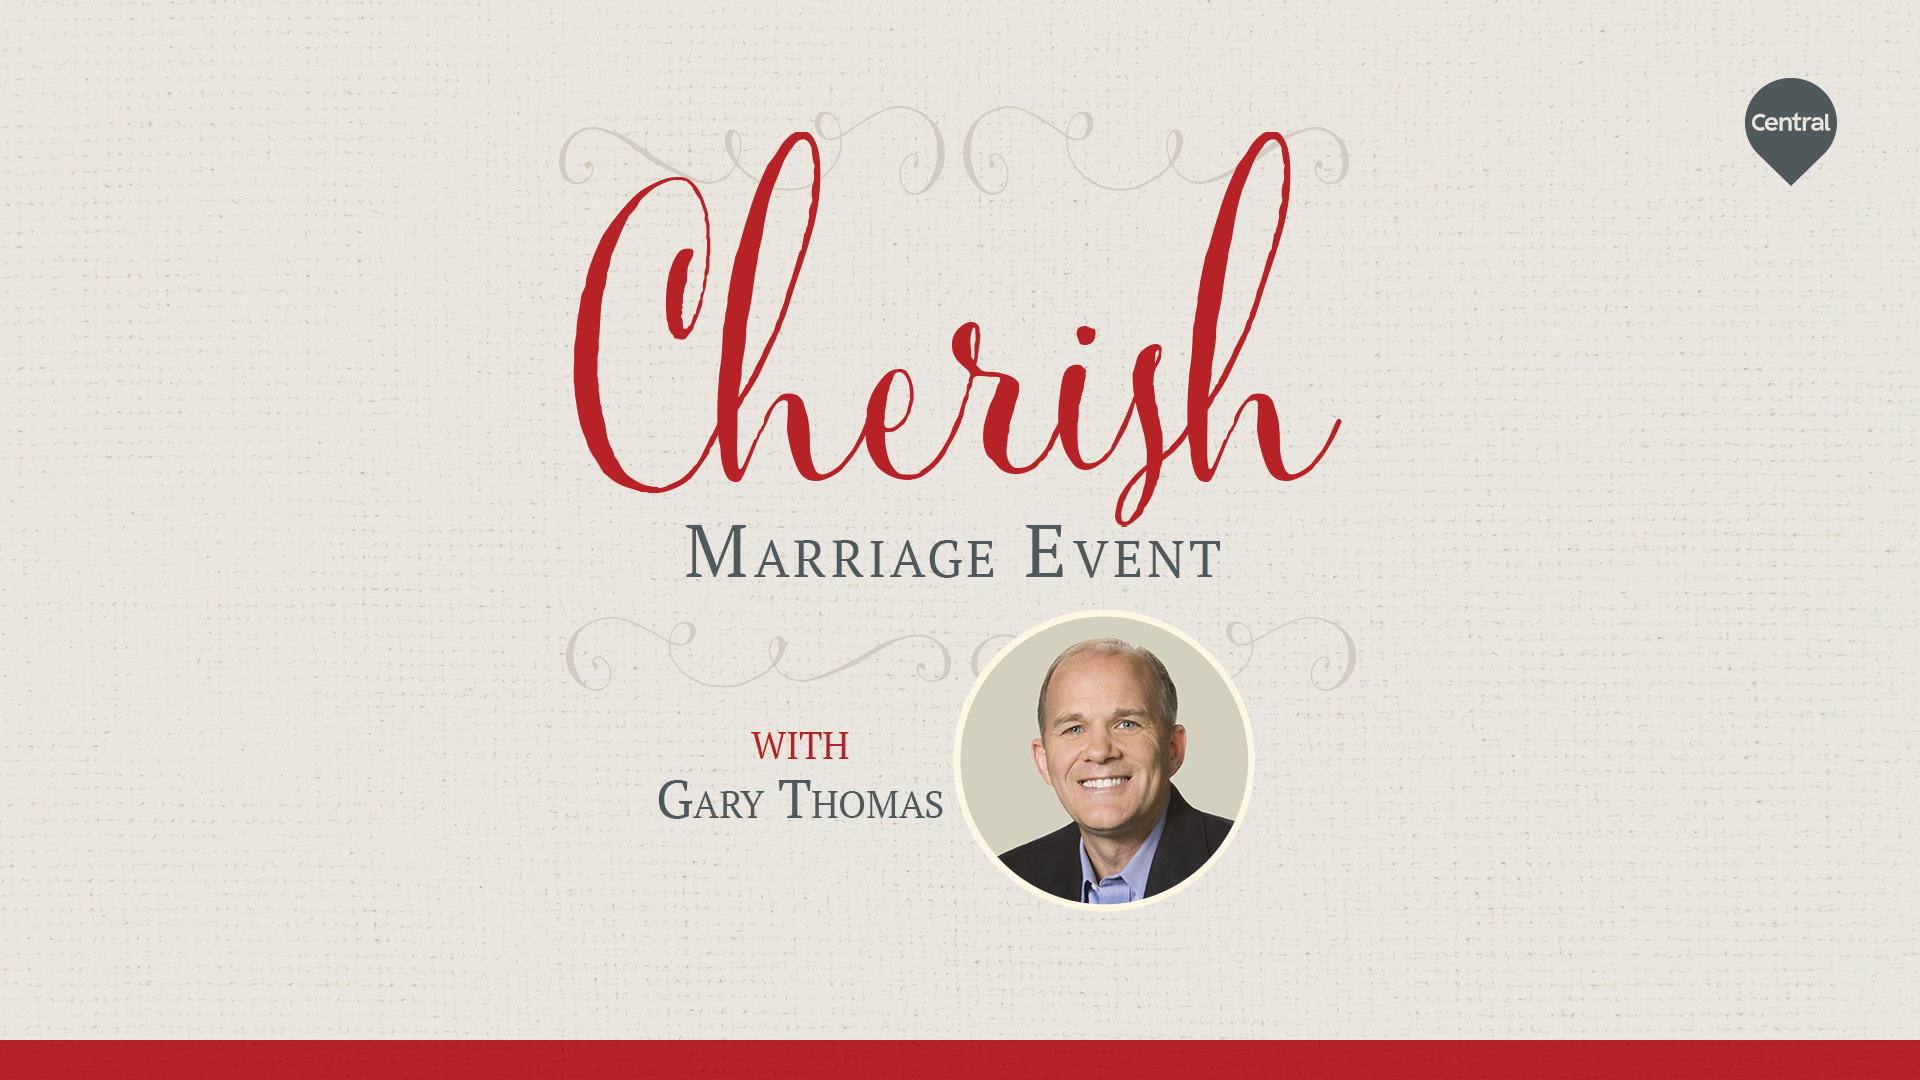 Cherish: A Marriage Event with Gary Thomas